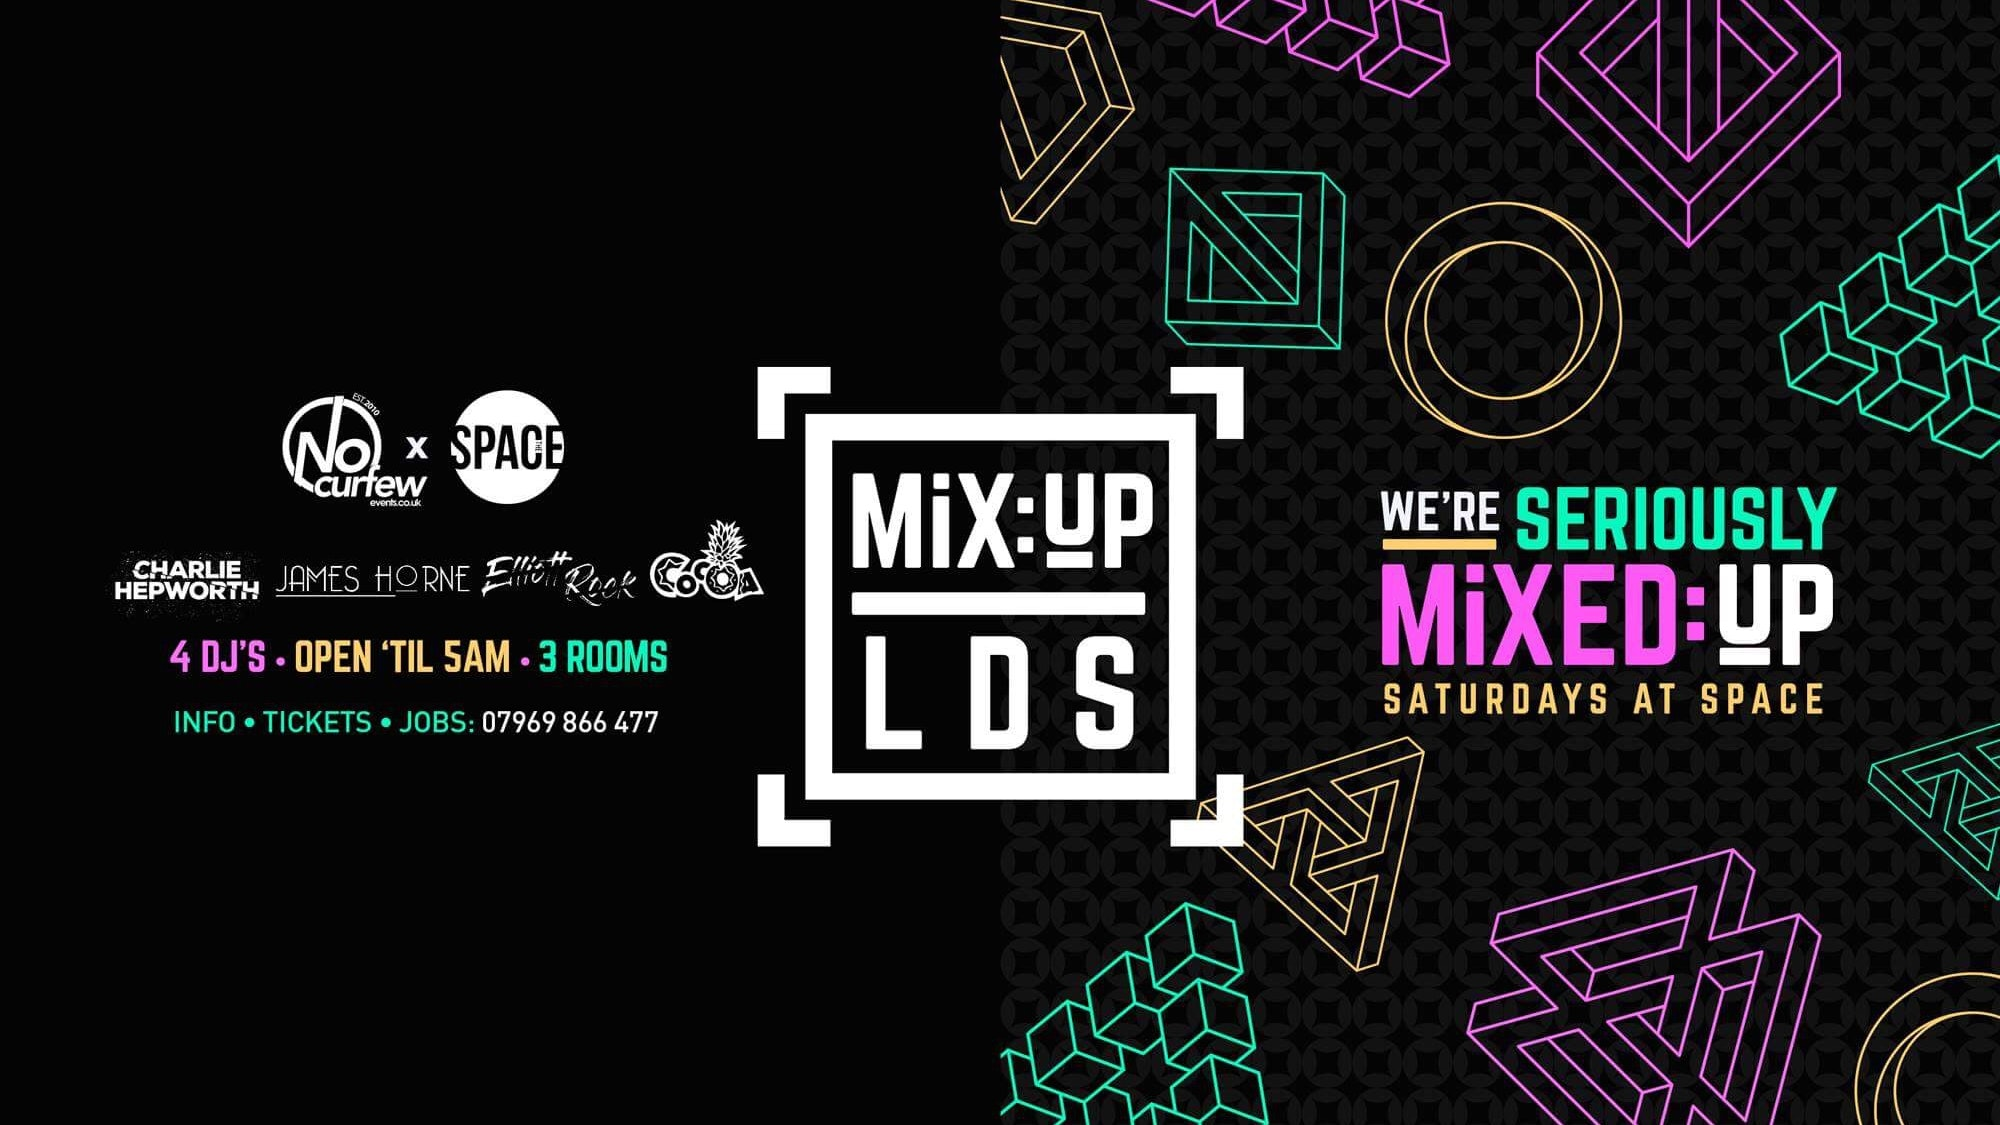 MiX:UP LDS at Space :: 6th April :: £1.50 Drinks!